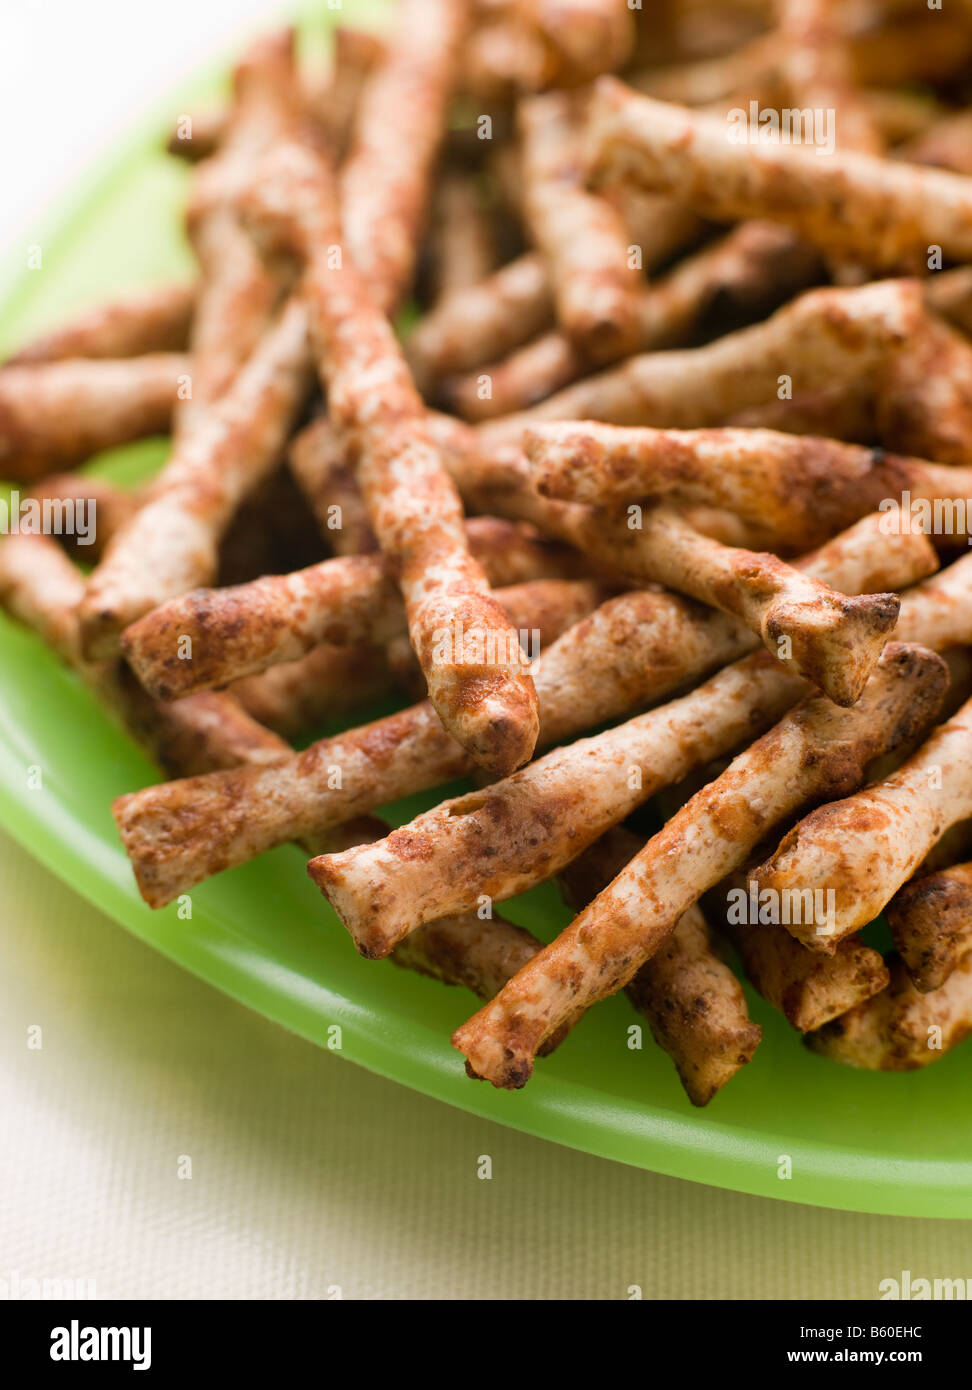 Savoury Wholemeal Snacks flavoured with Yeast Extract - Stock Image